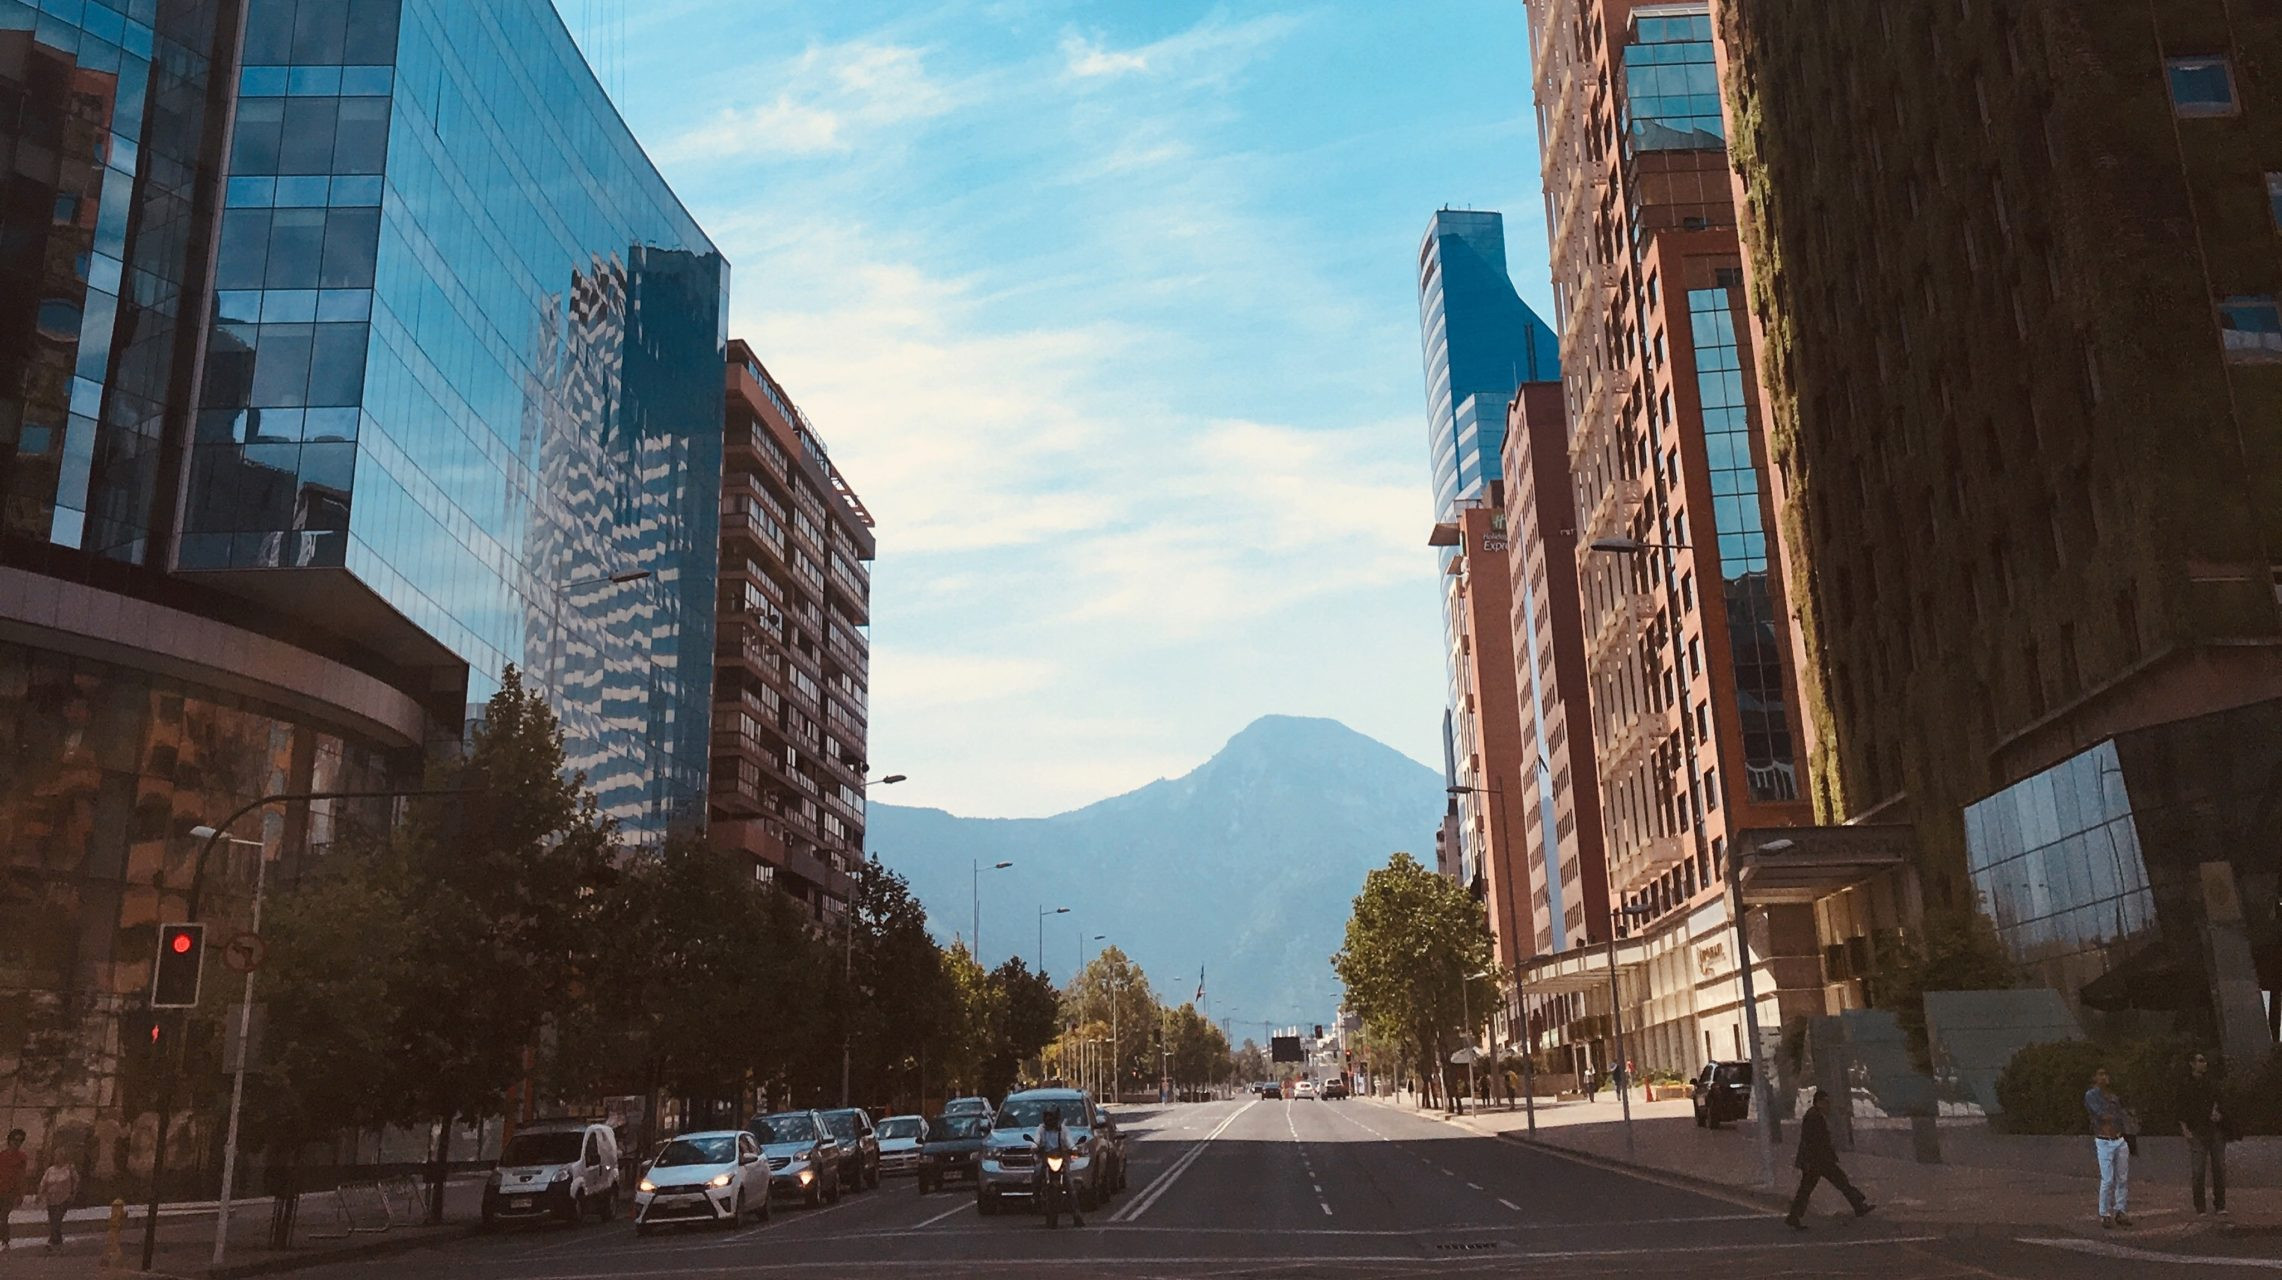 Mountain in the background of tall buildings lining a street